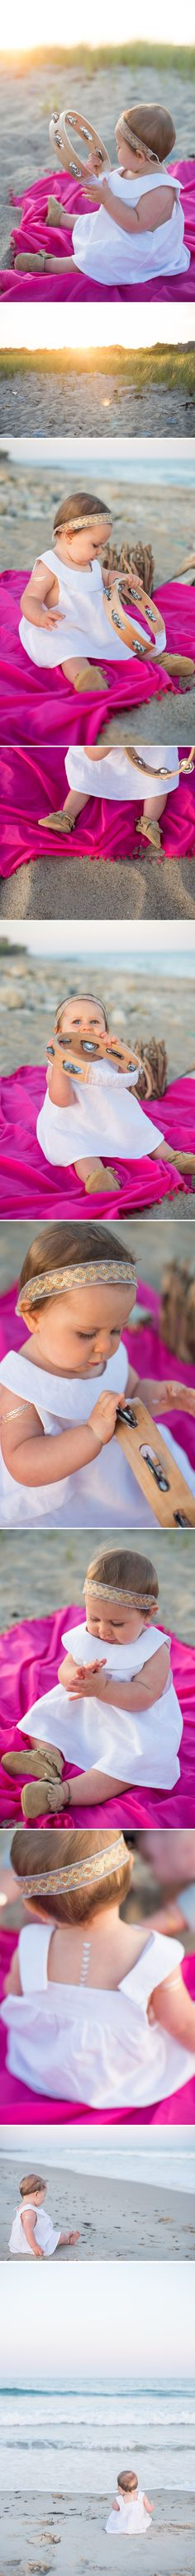 Awe! Flash Tattoos, baby edition! Images from La Petite Peach Blog. So cute!